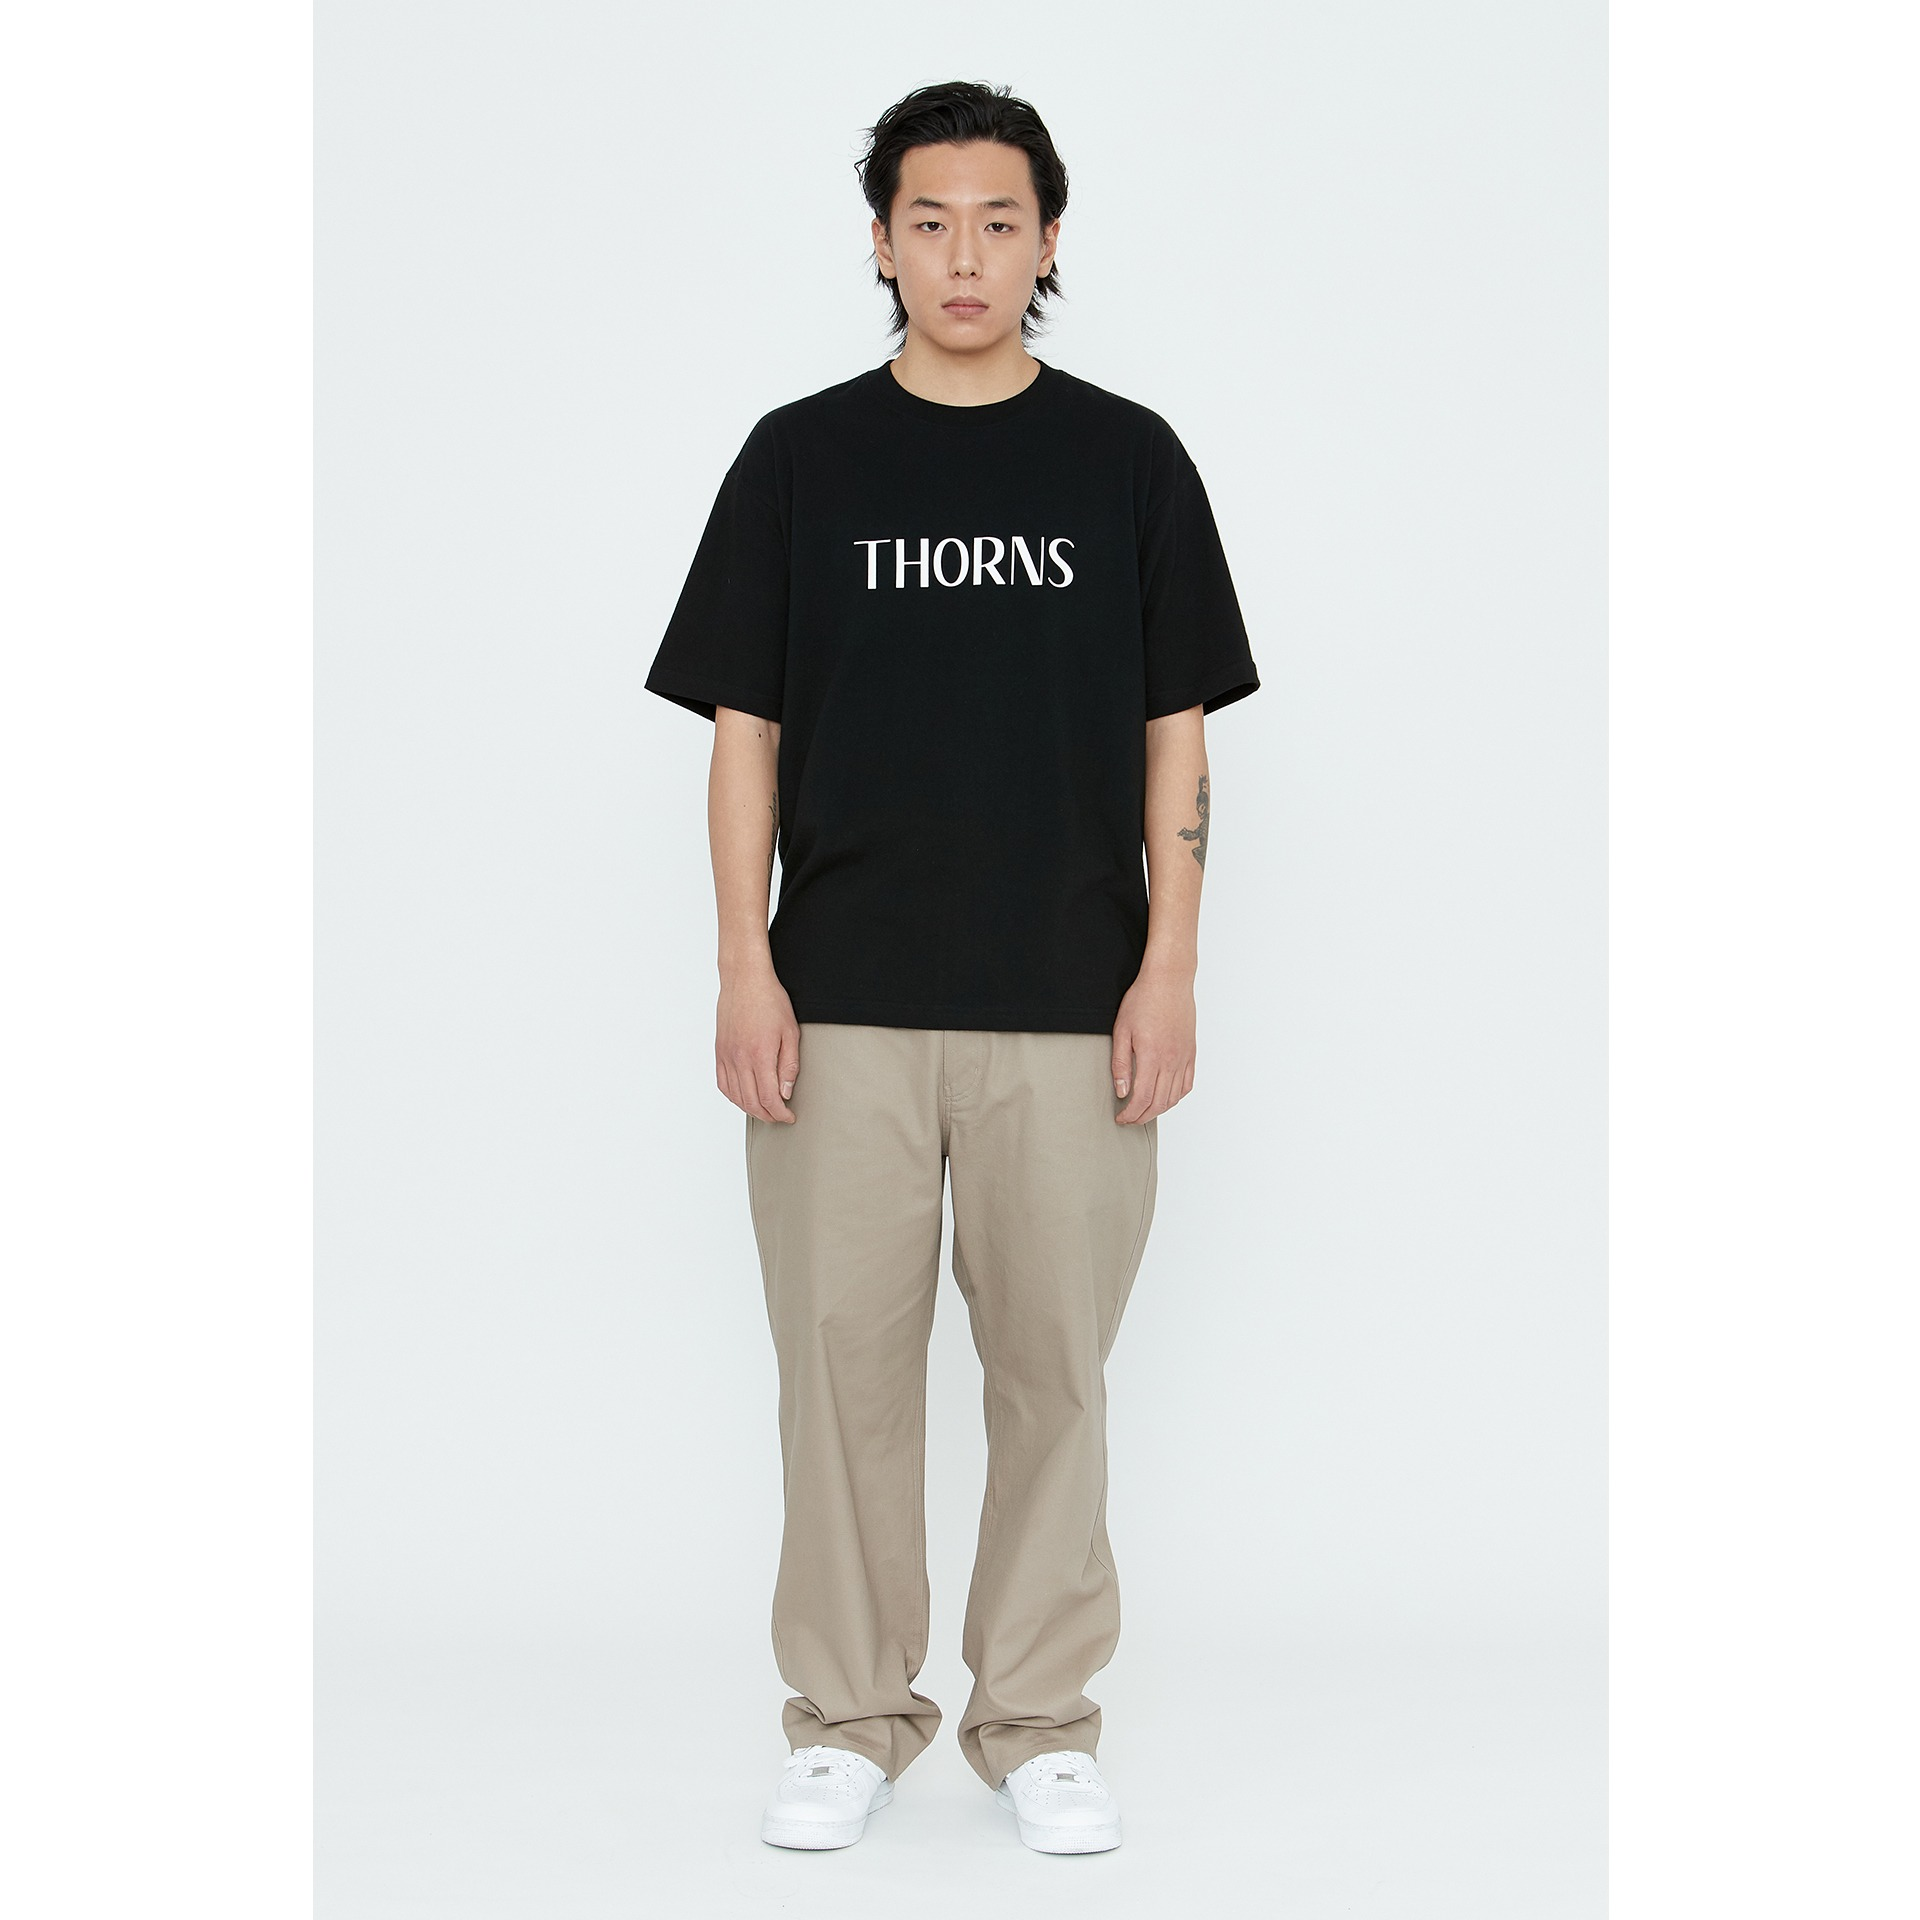 LMC THORNS BASIC TEE black